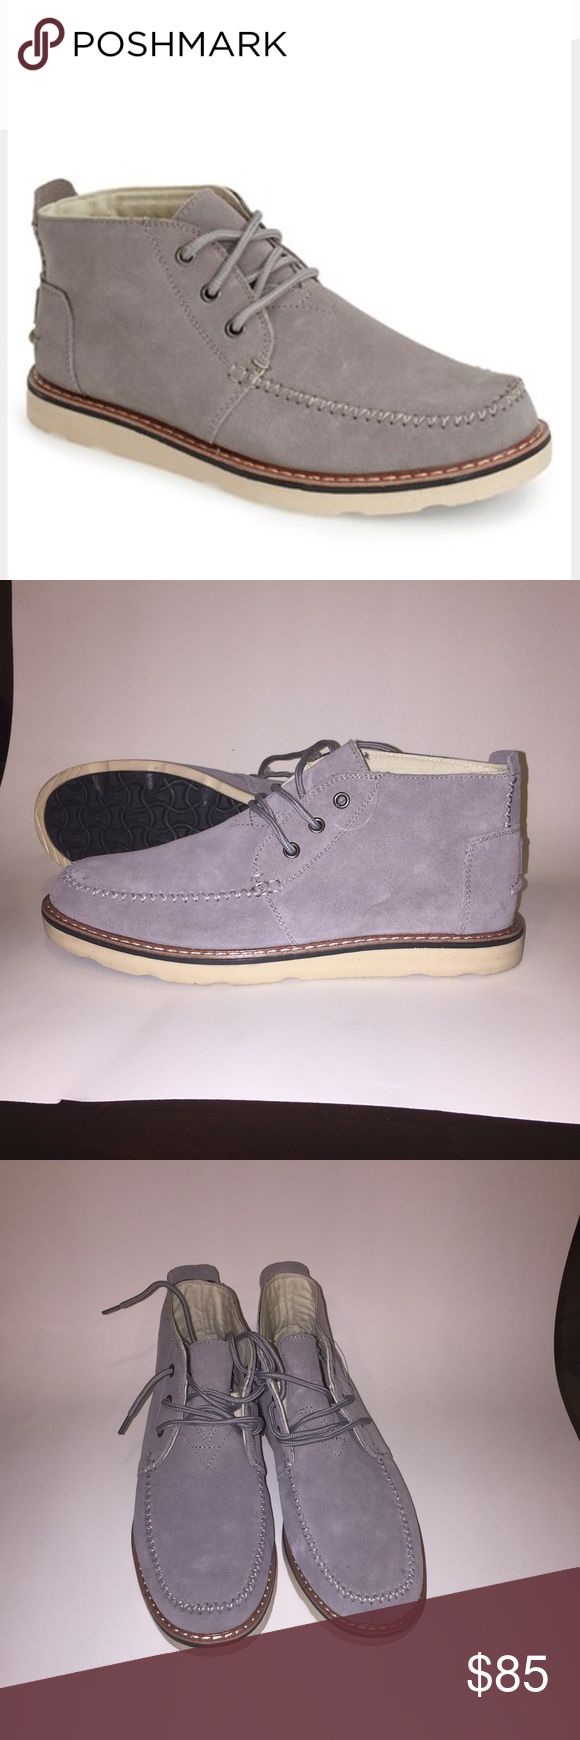 Toms Men's Chukka Boots Toms Classic Men's Suede Chukka Boots new without a box TOMS Shoes Chukka Boots